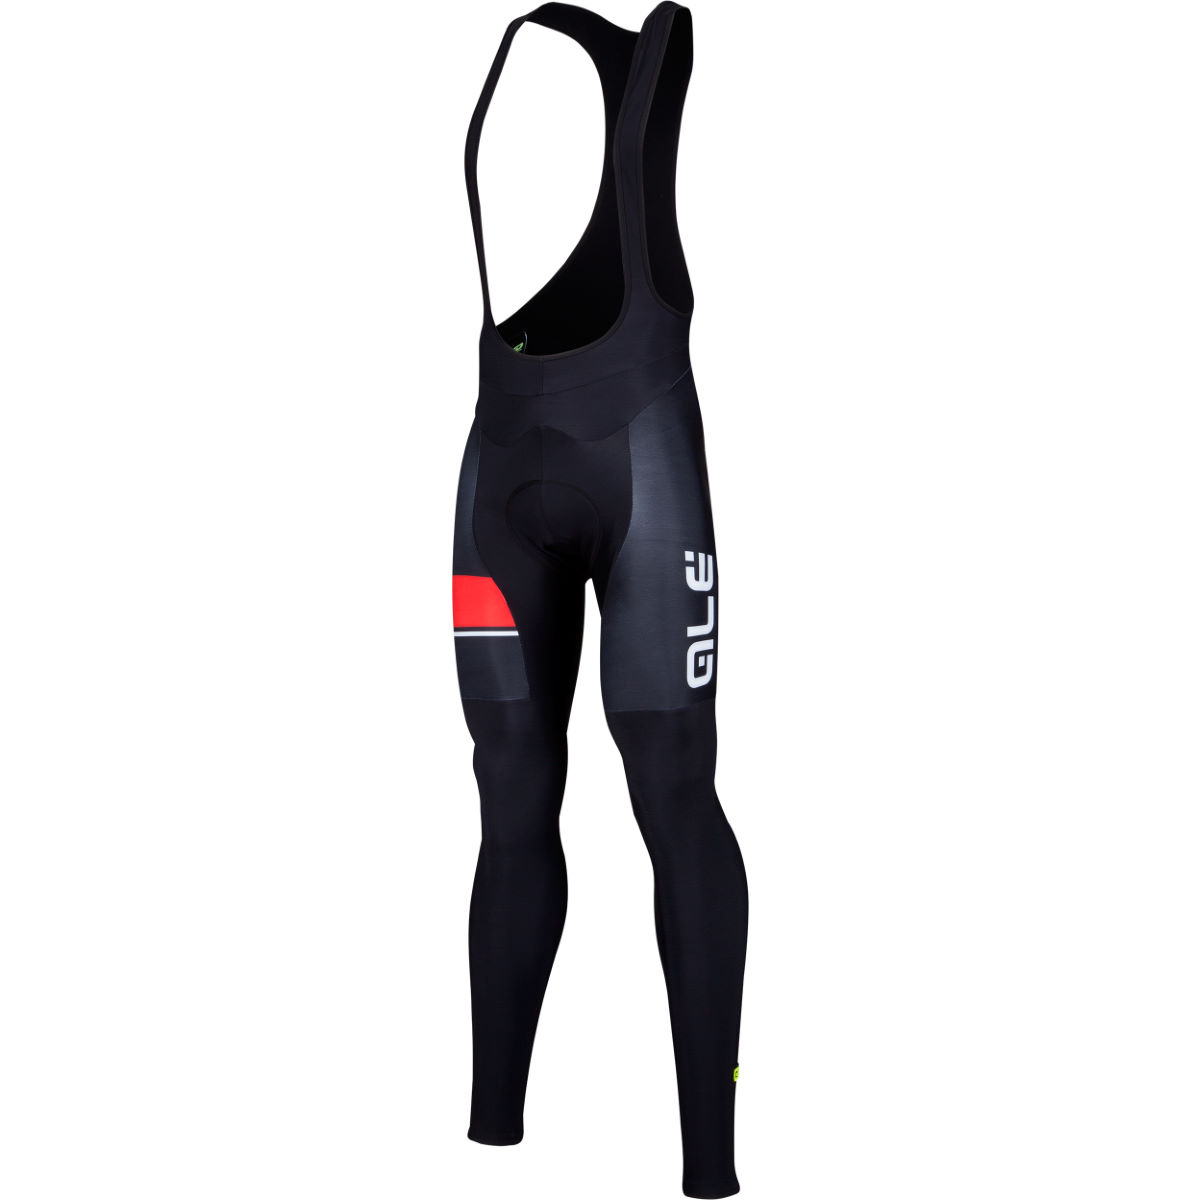 Alé Plus Urano Bib Tights